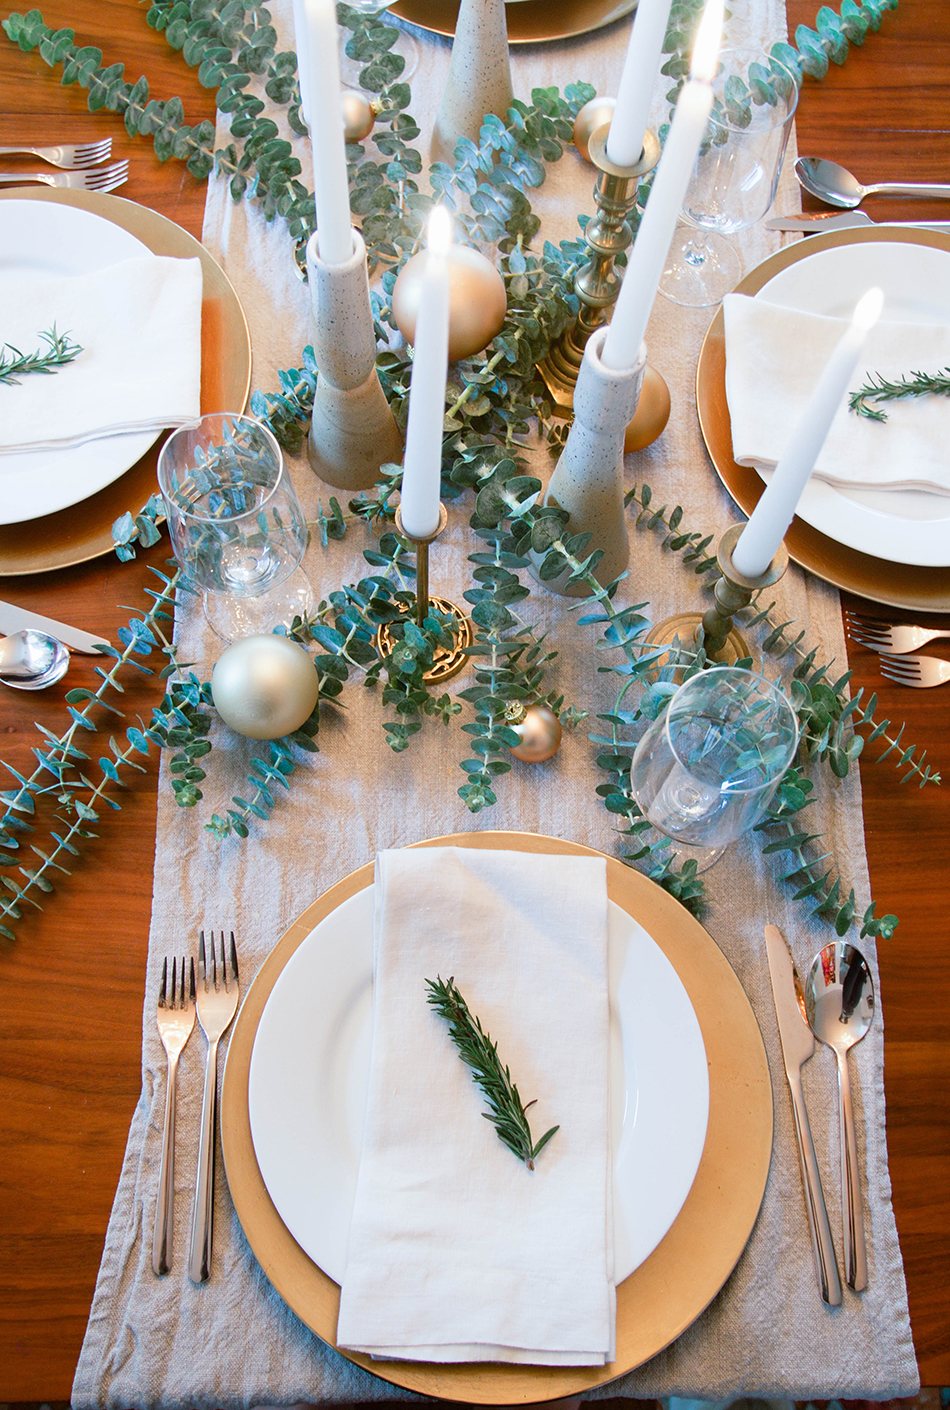 Last Minute Table Setting Ideas For The Holidays Simple